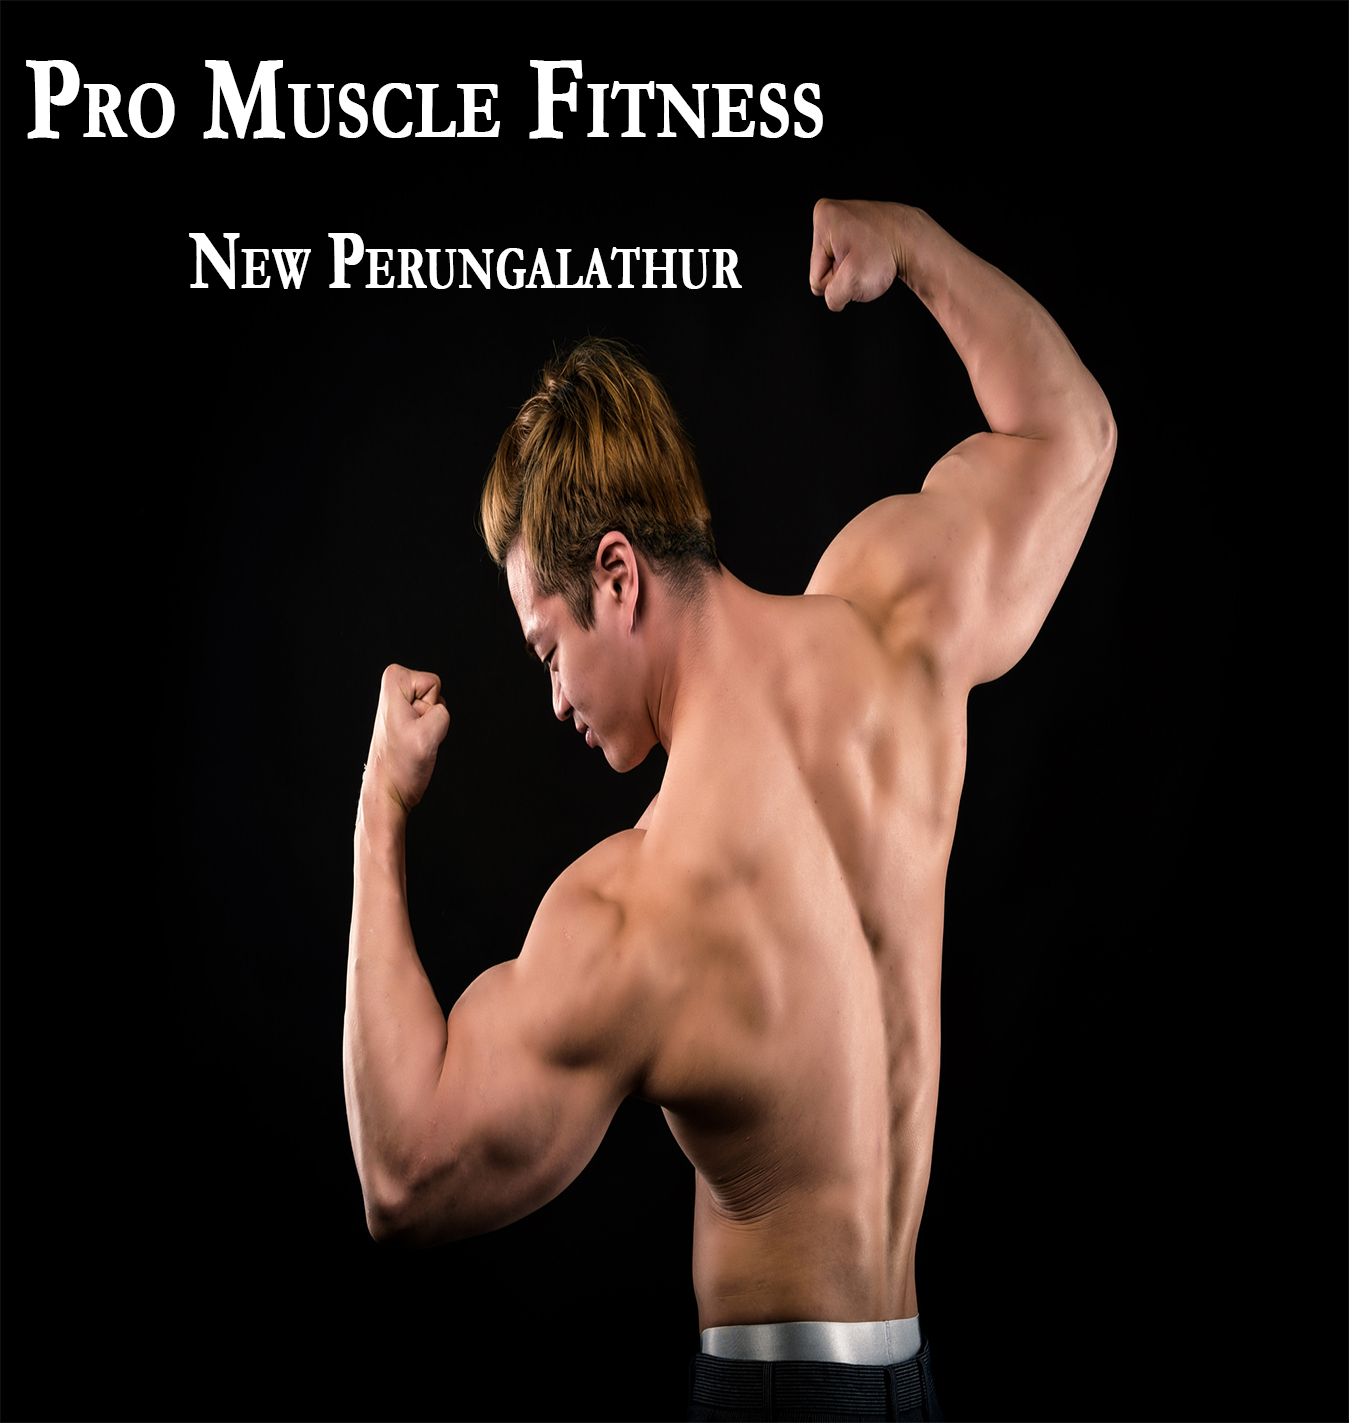 PRO MUSCLE FITNESS